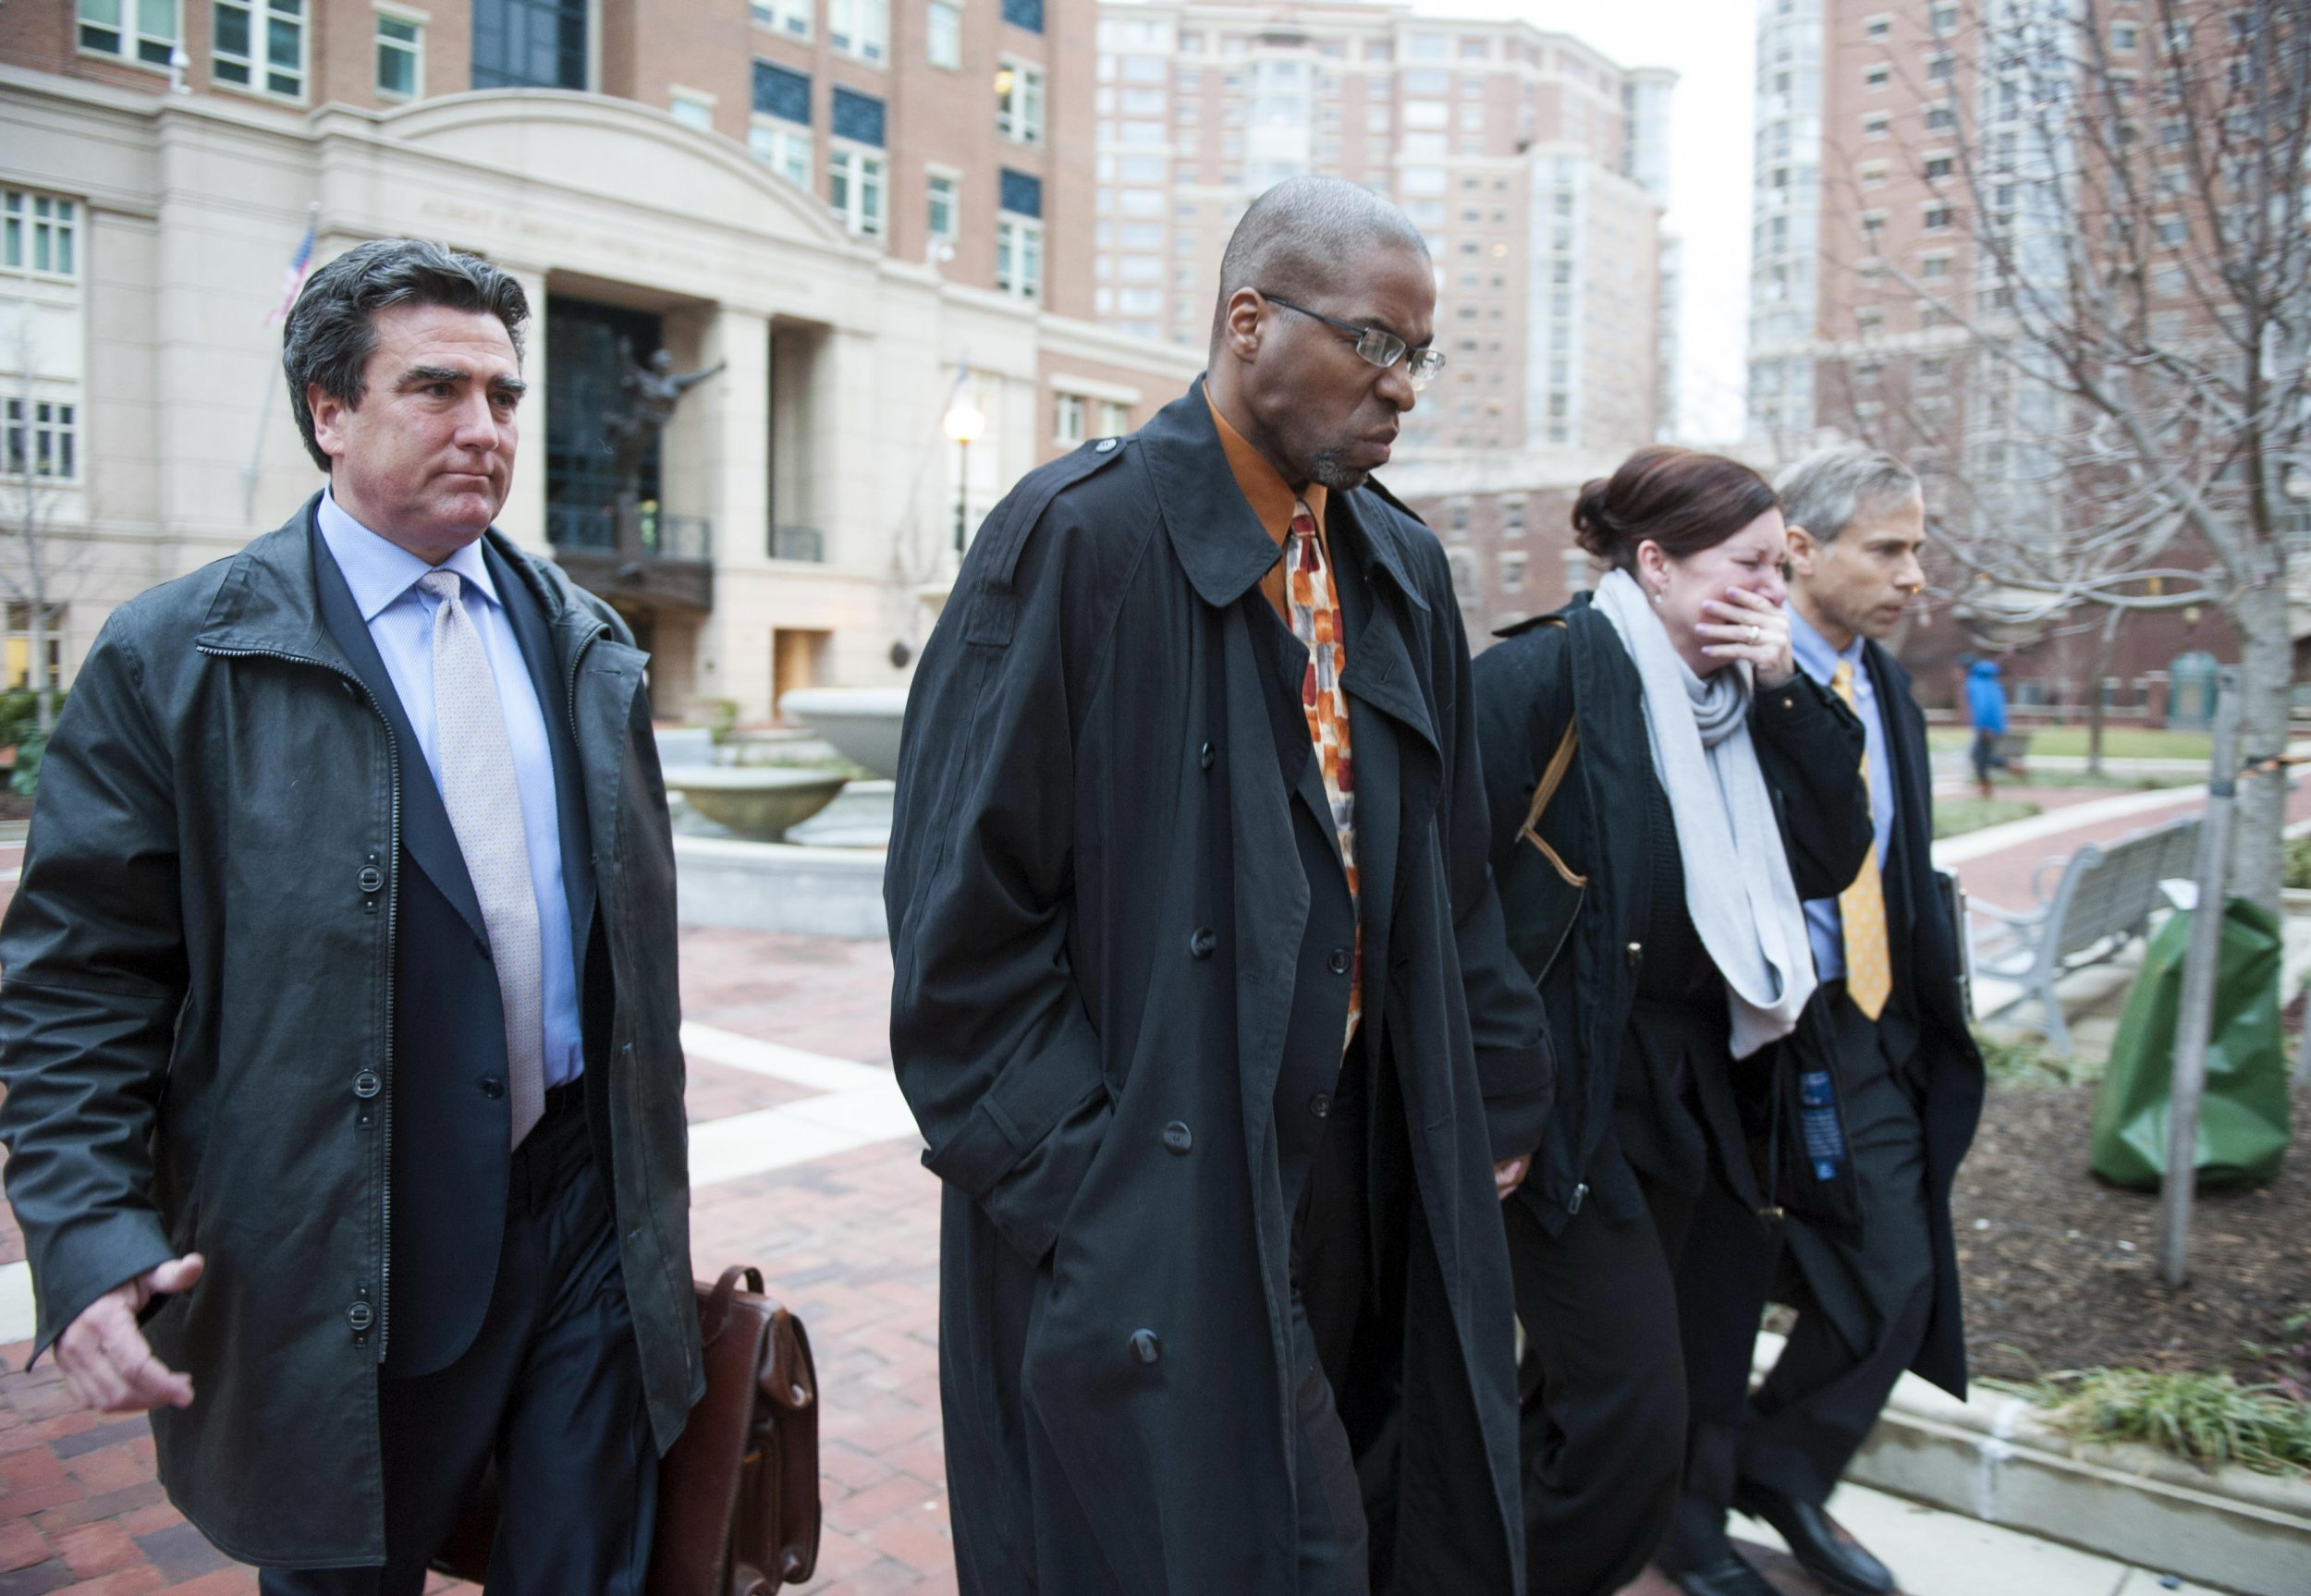 ex cia officer found guilty - HD2500×1727